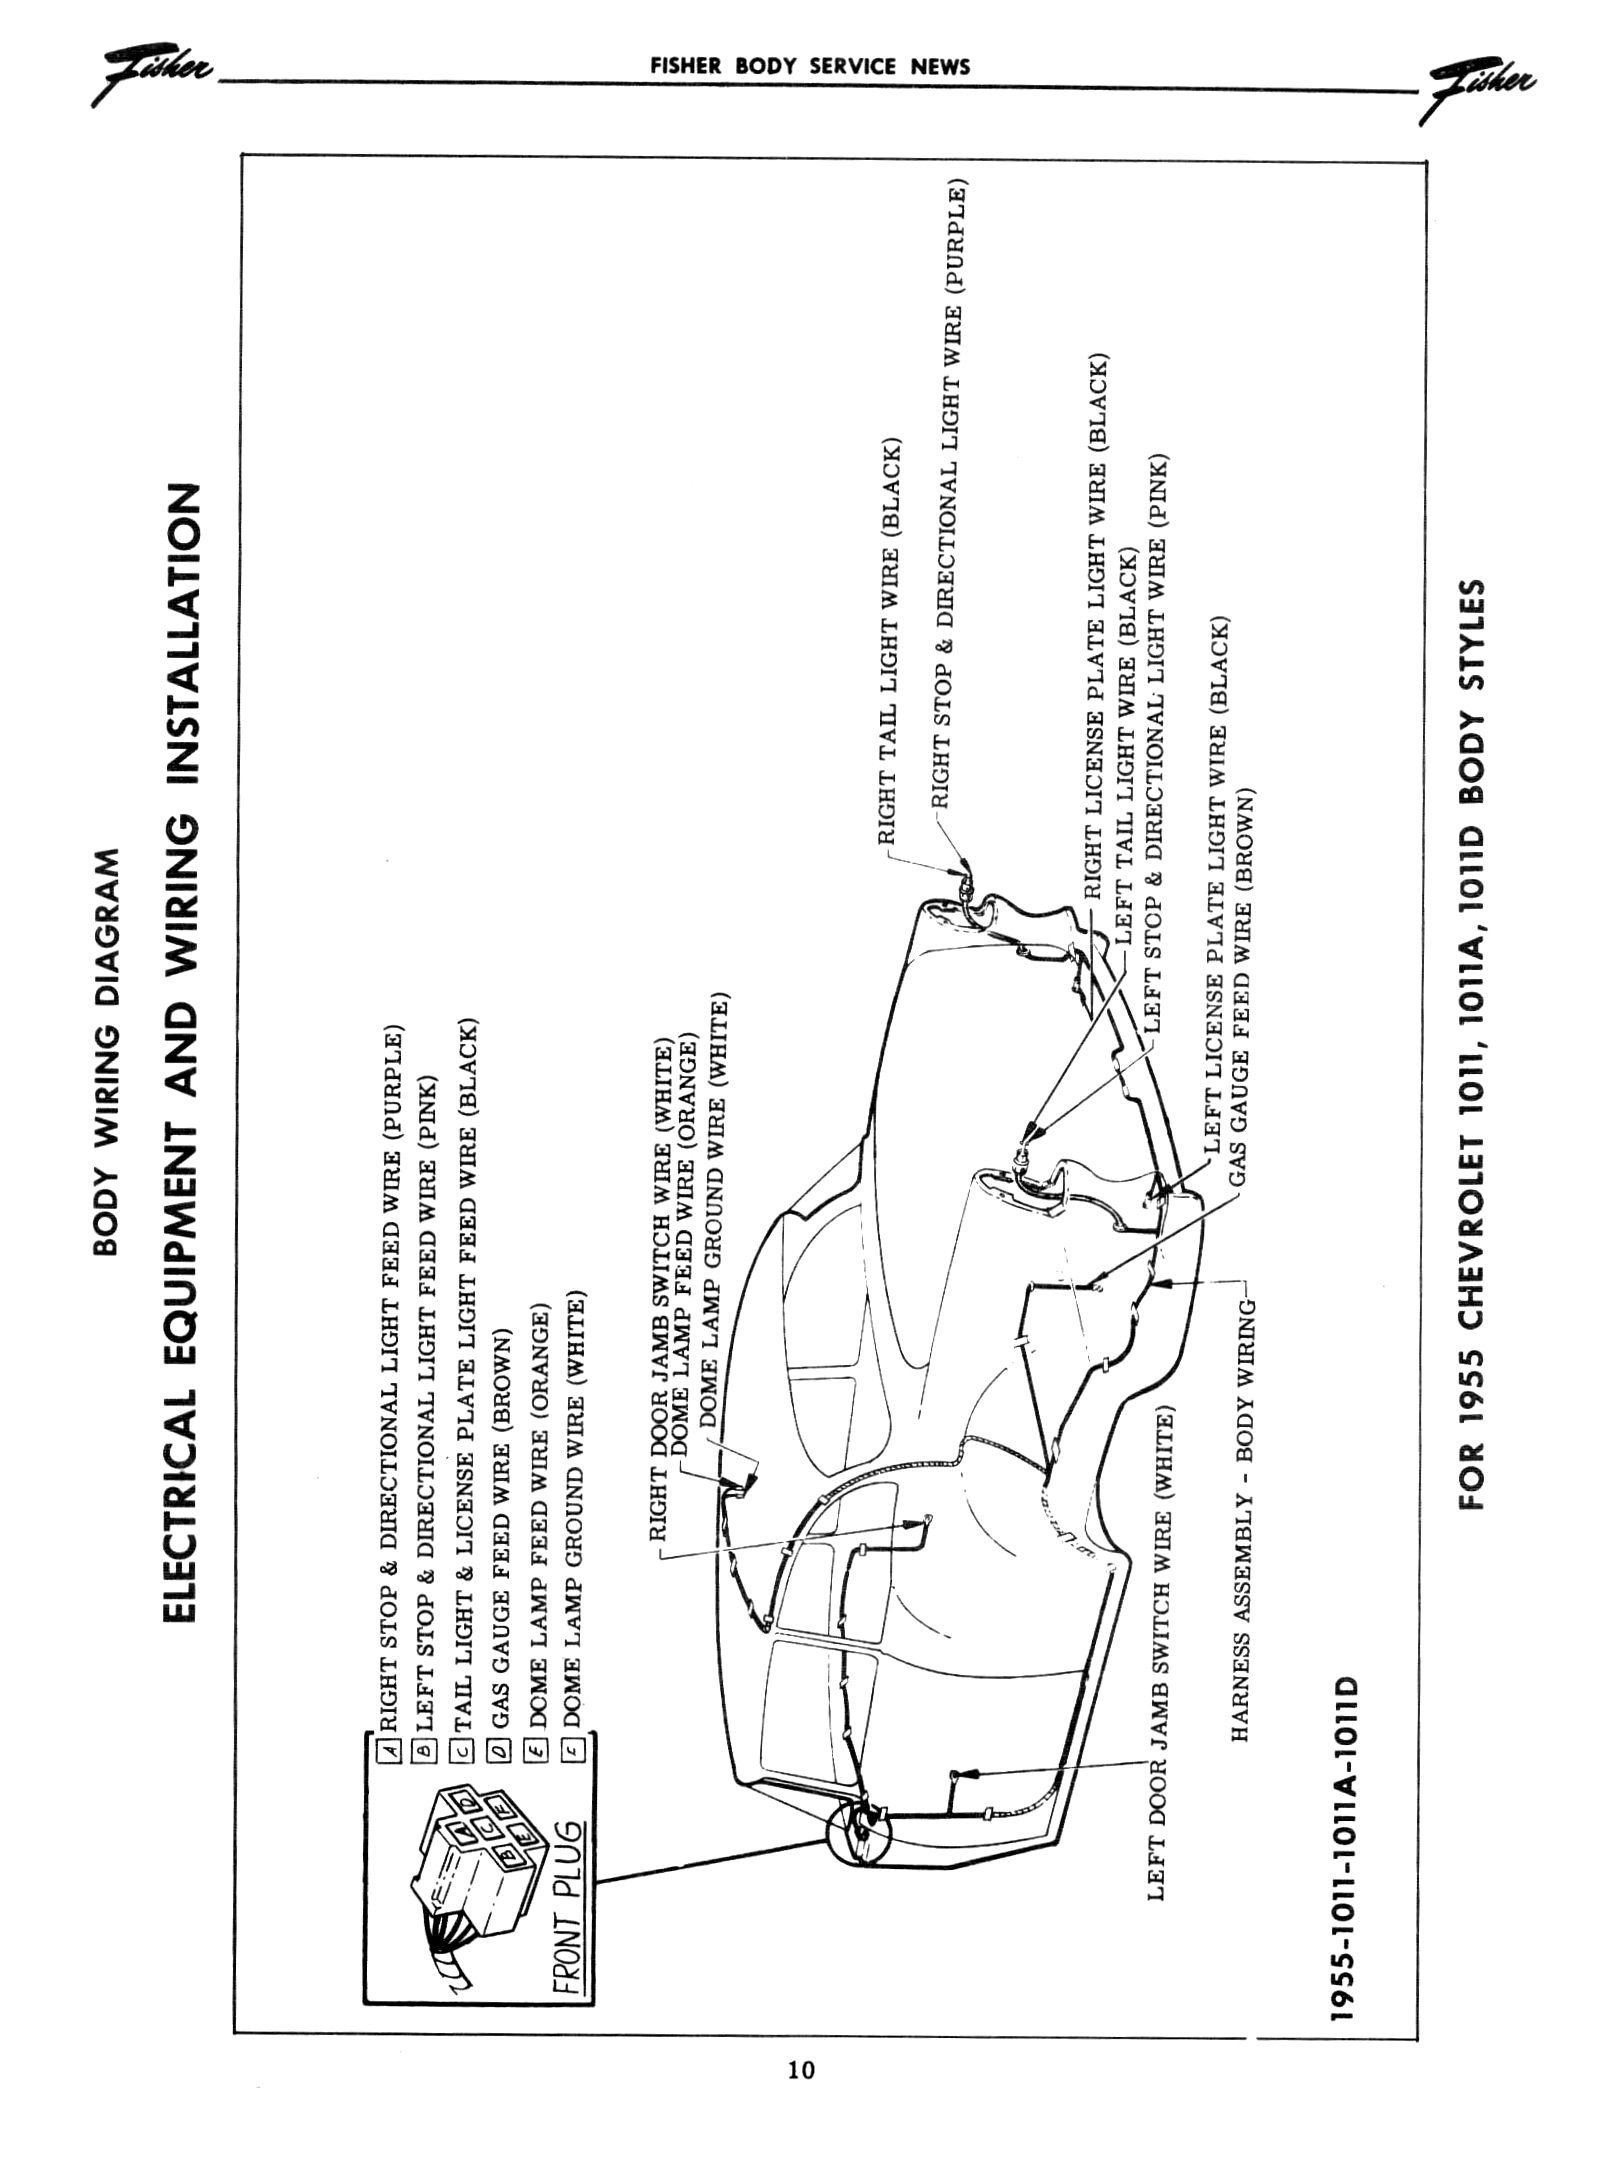 Chevy Wiring Diagrams Ignition Switch Diagram 1963 Jeep J 200 1955 Body